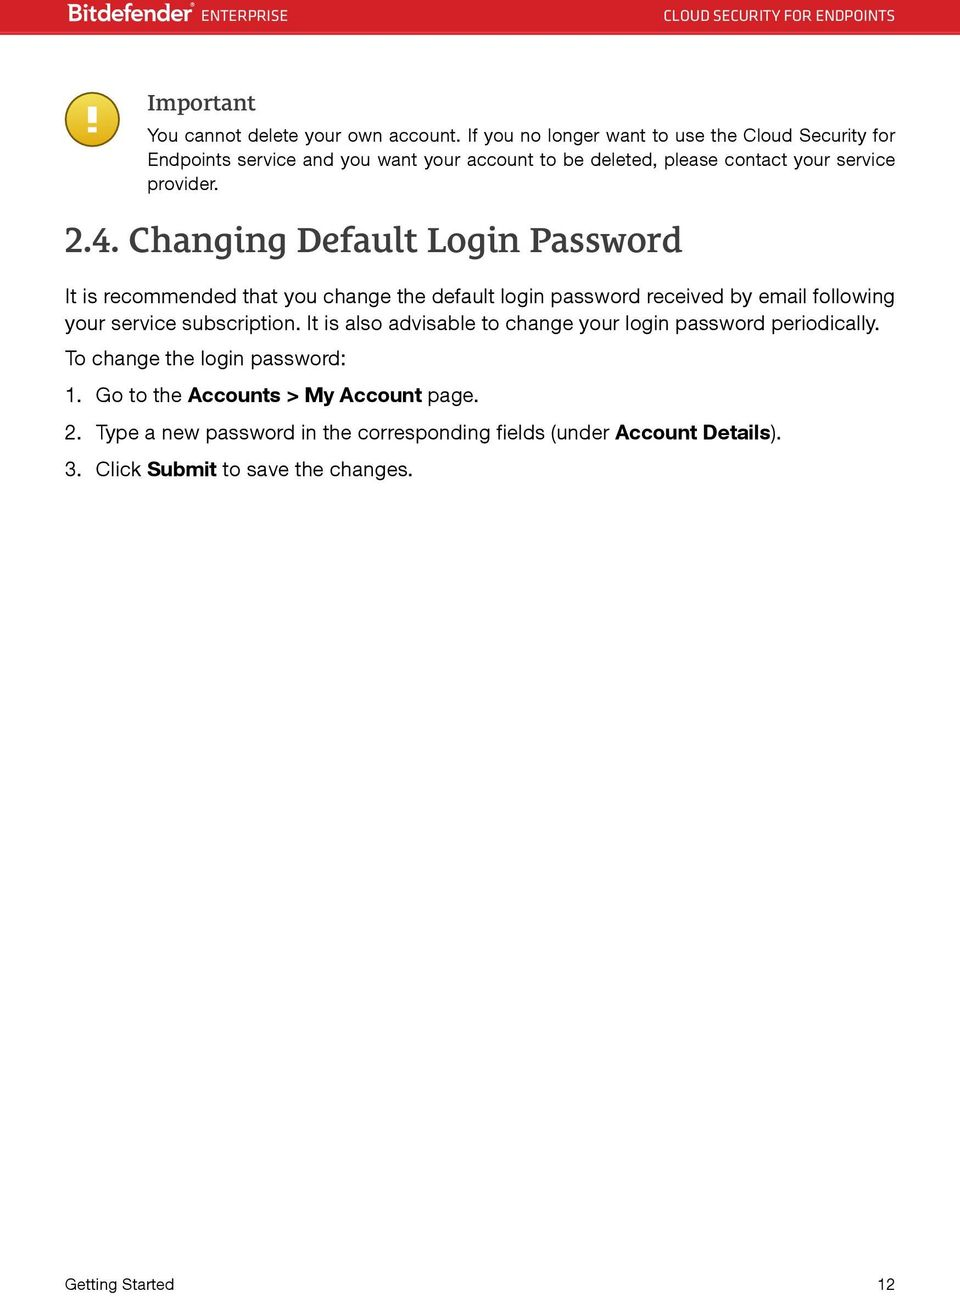 Changing Default Login Password It is recommended that you change the default login password received by email following your service subscription.